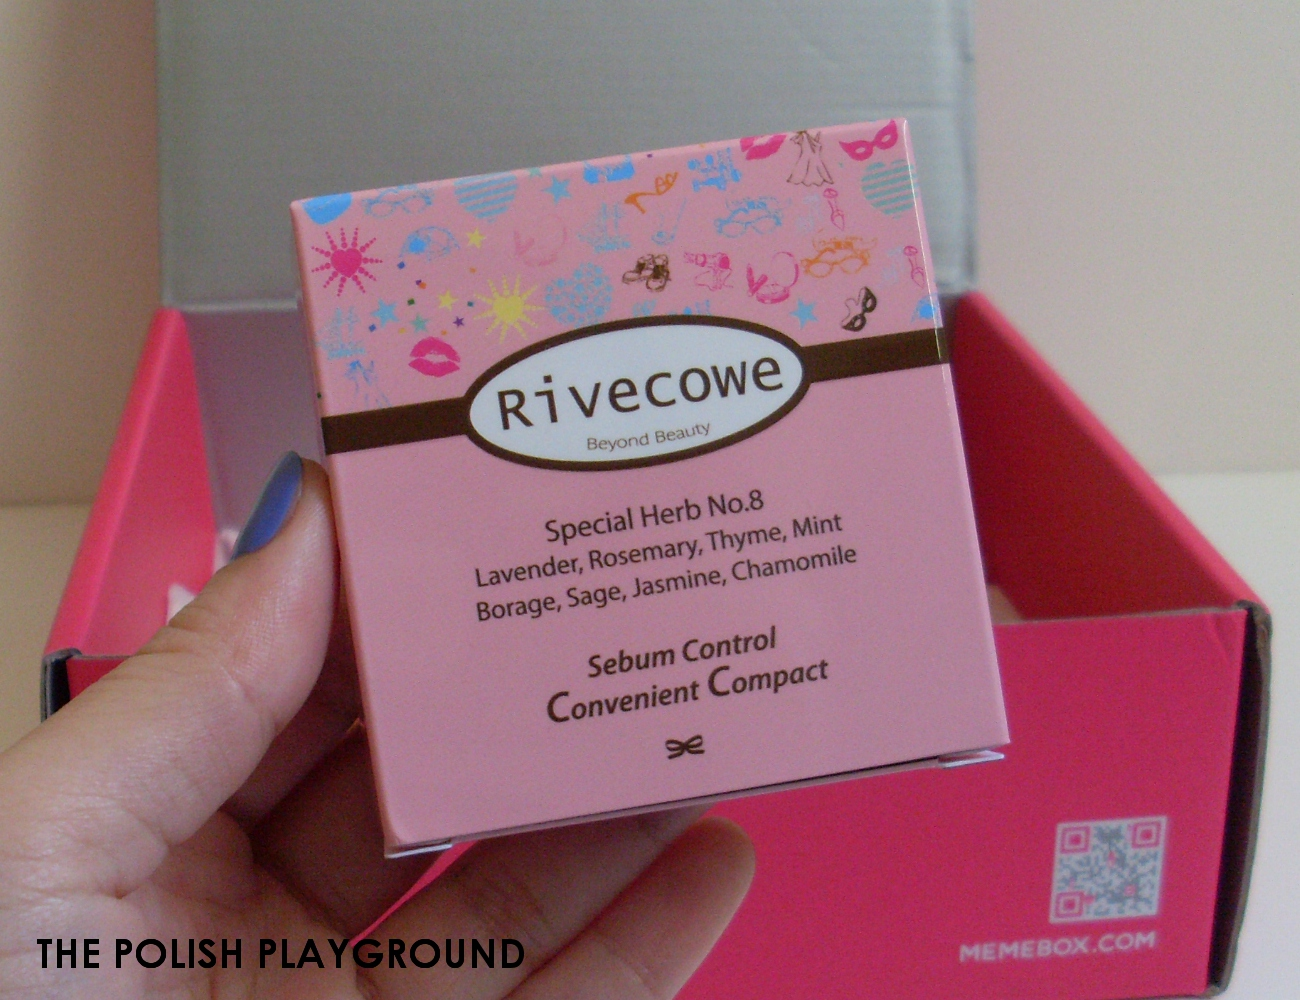 Memebox Office Essentials Unboxing - RiveCowe Sebum Control Convenient Compact